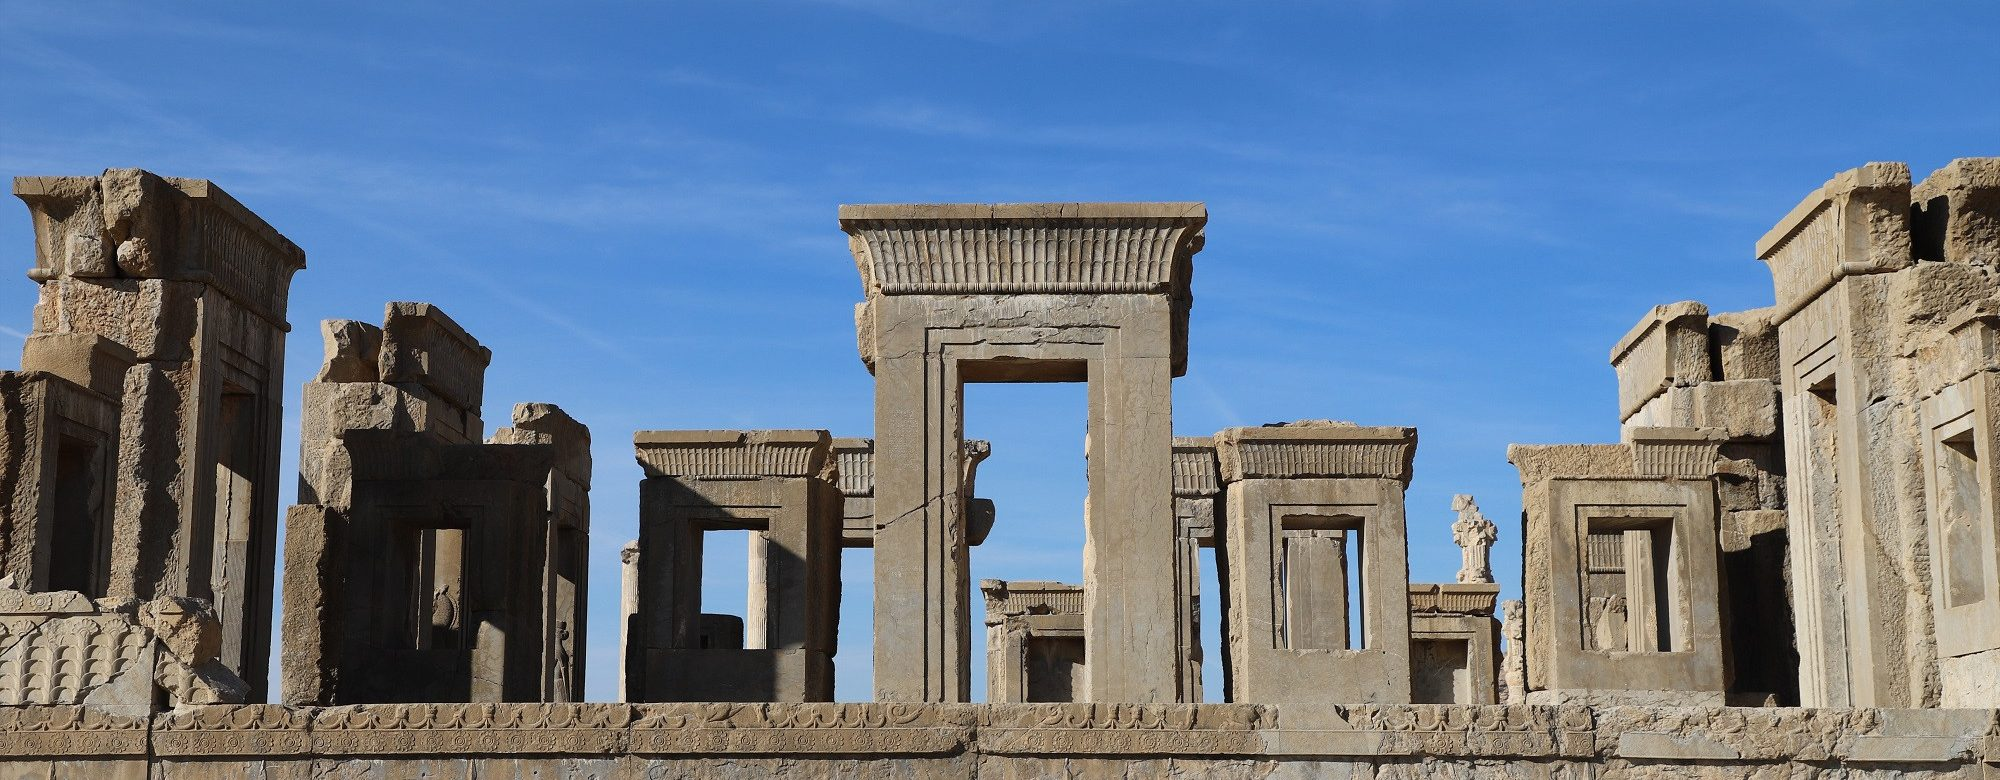 Image of the Persepolis